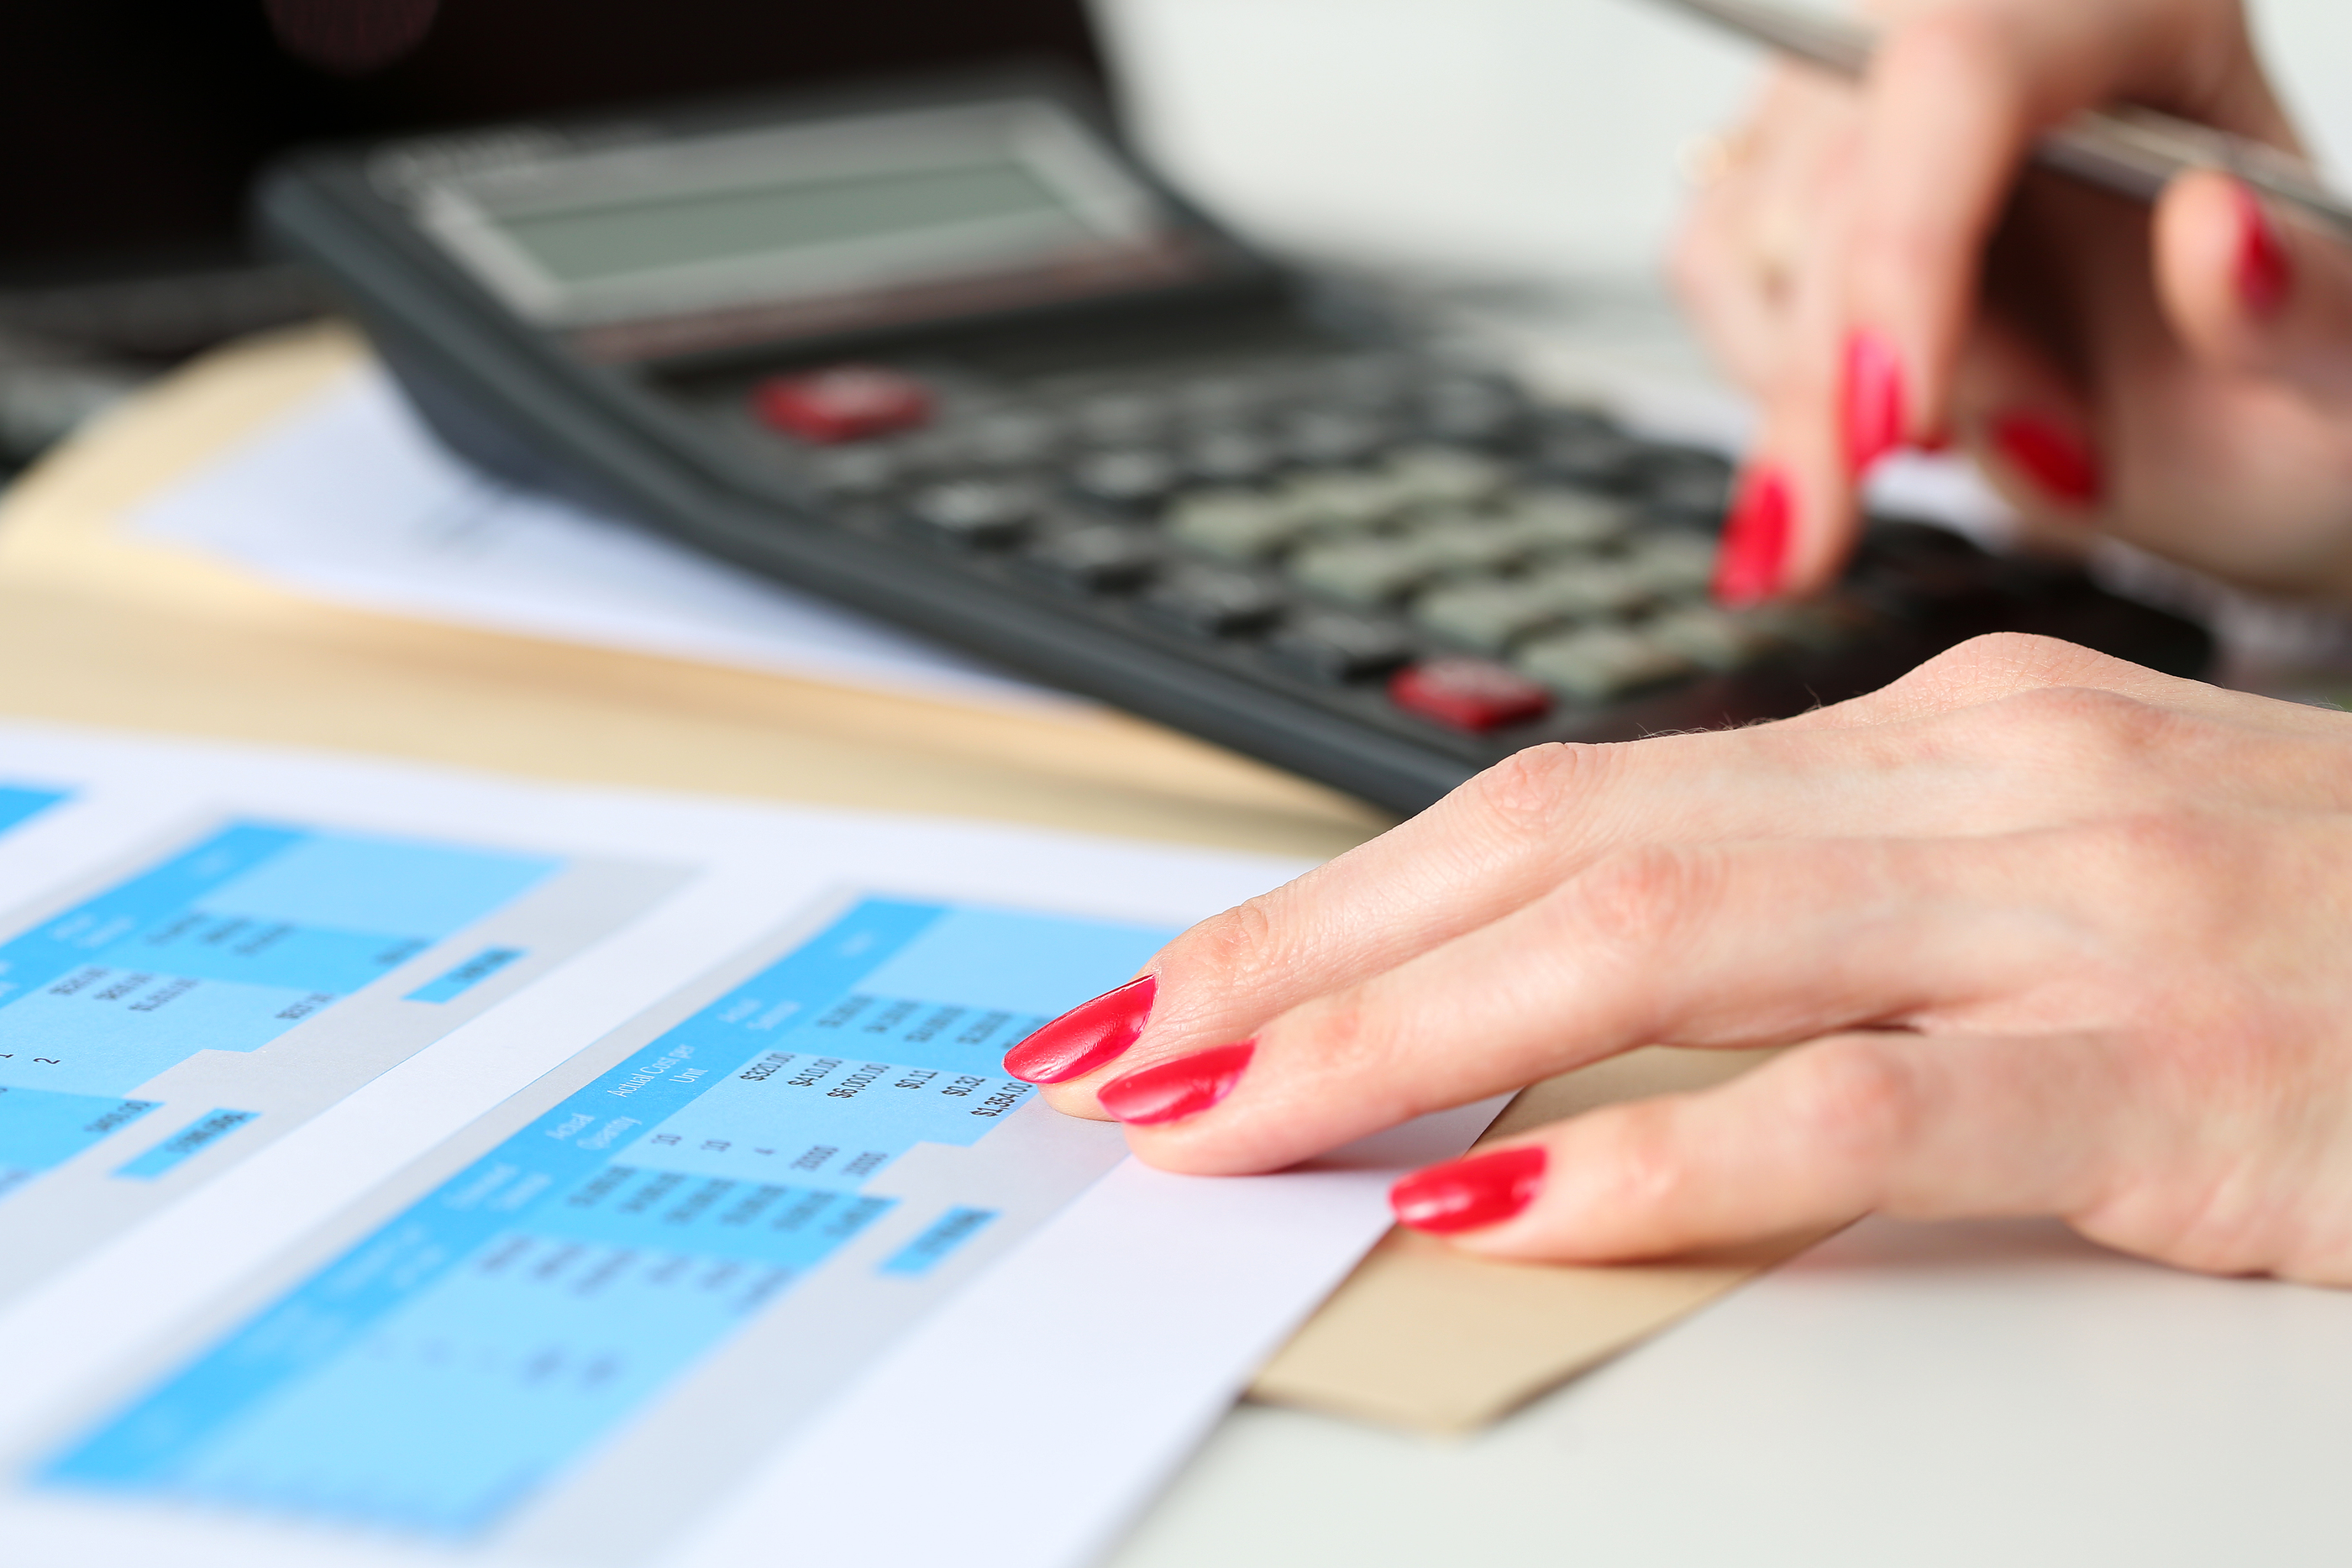 SSI/SSDI Payments & The Calculation Of Child Support